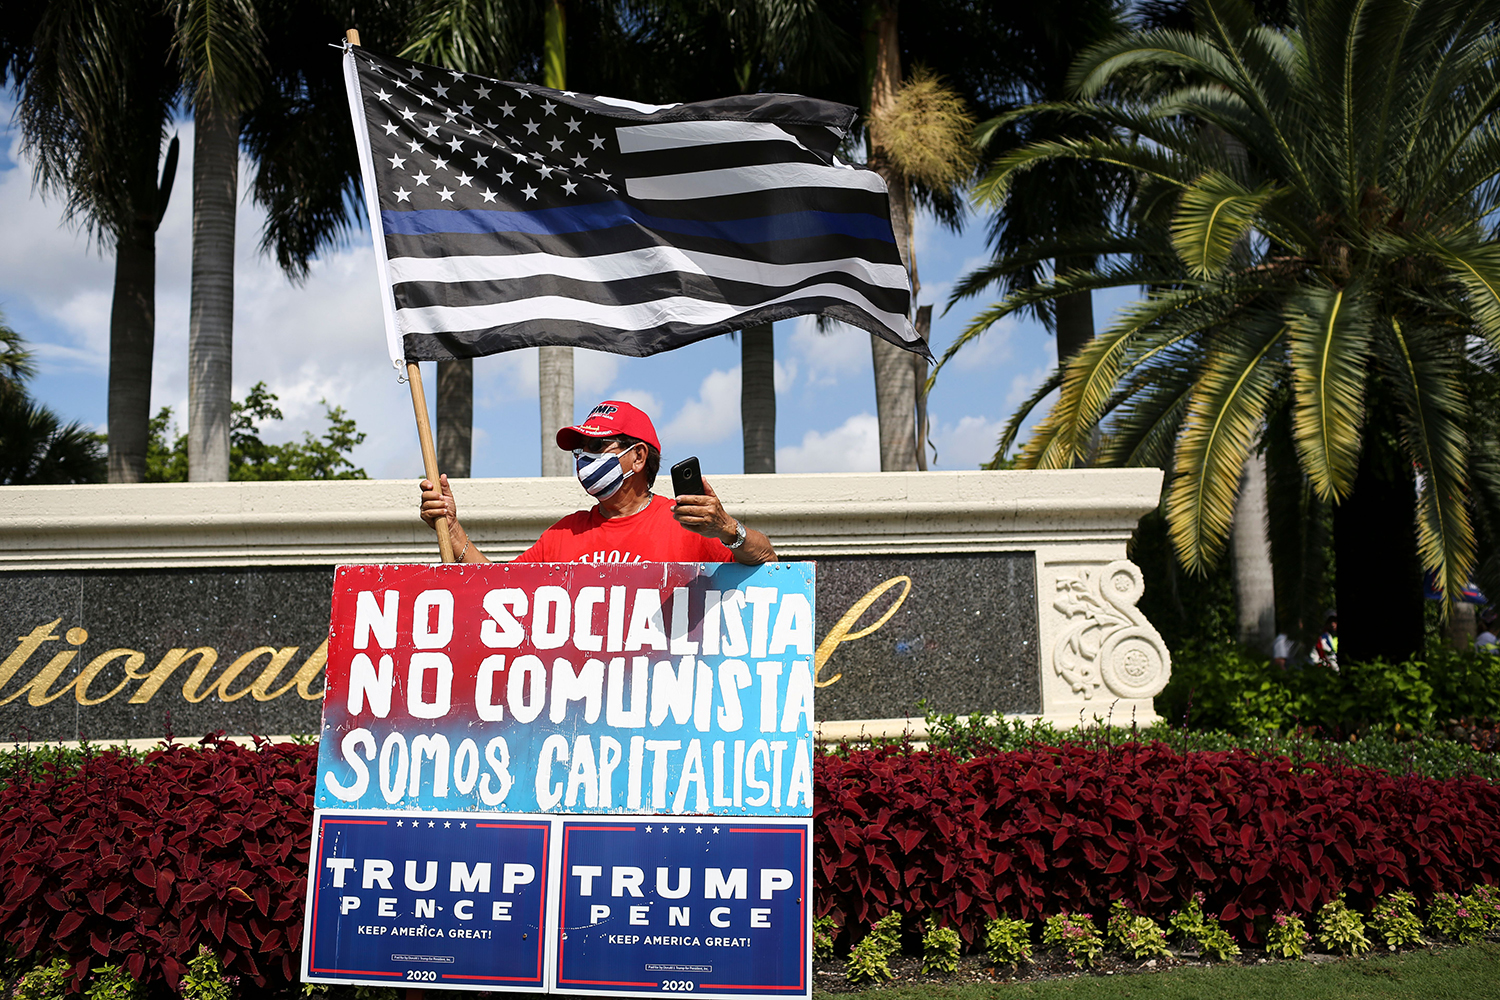 foreignpolicy.com - Augusta Saraiva - In Florida, Many Colombian Americans Fear Biden Is Soft on Socialism